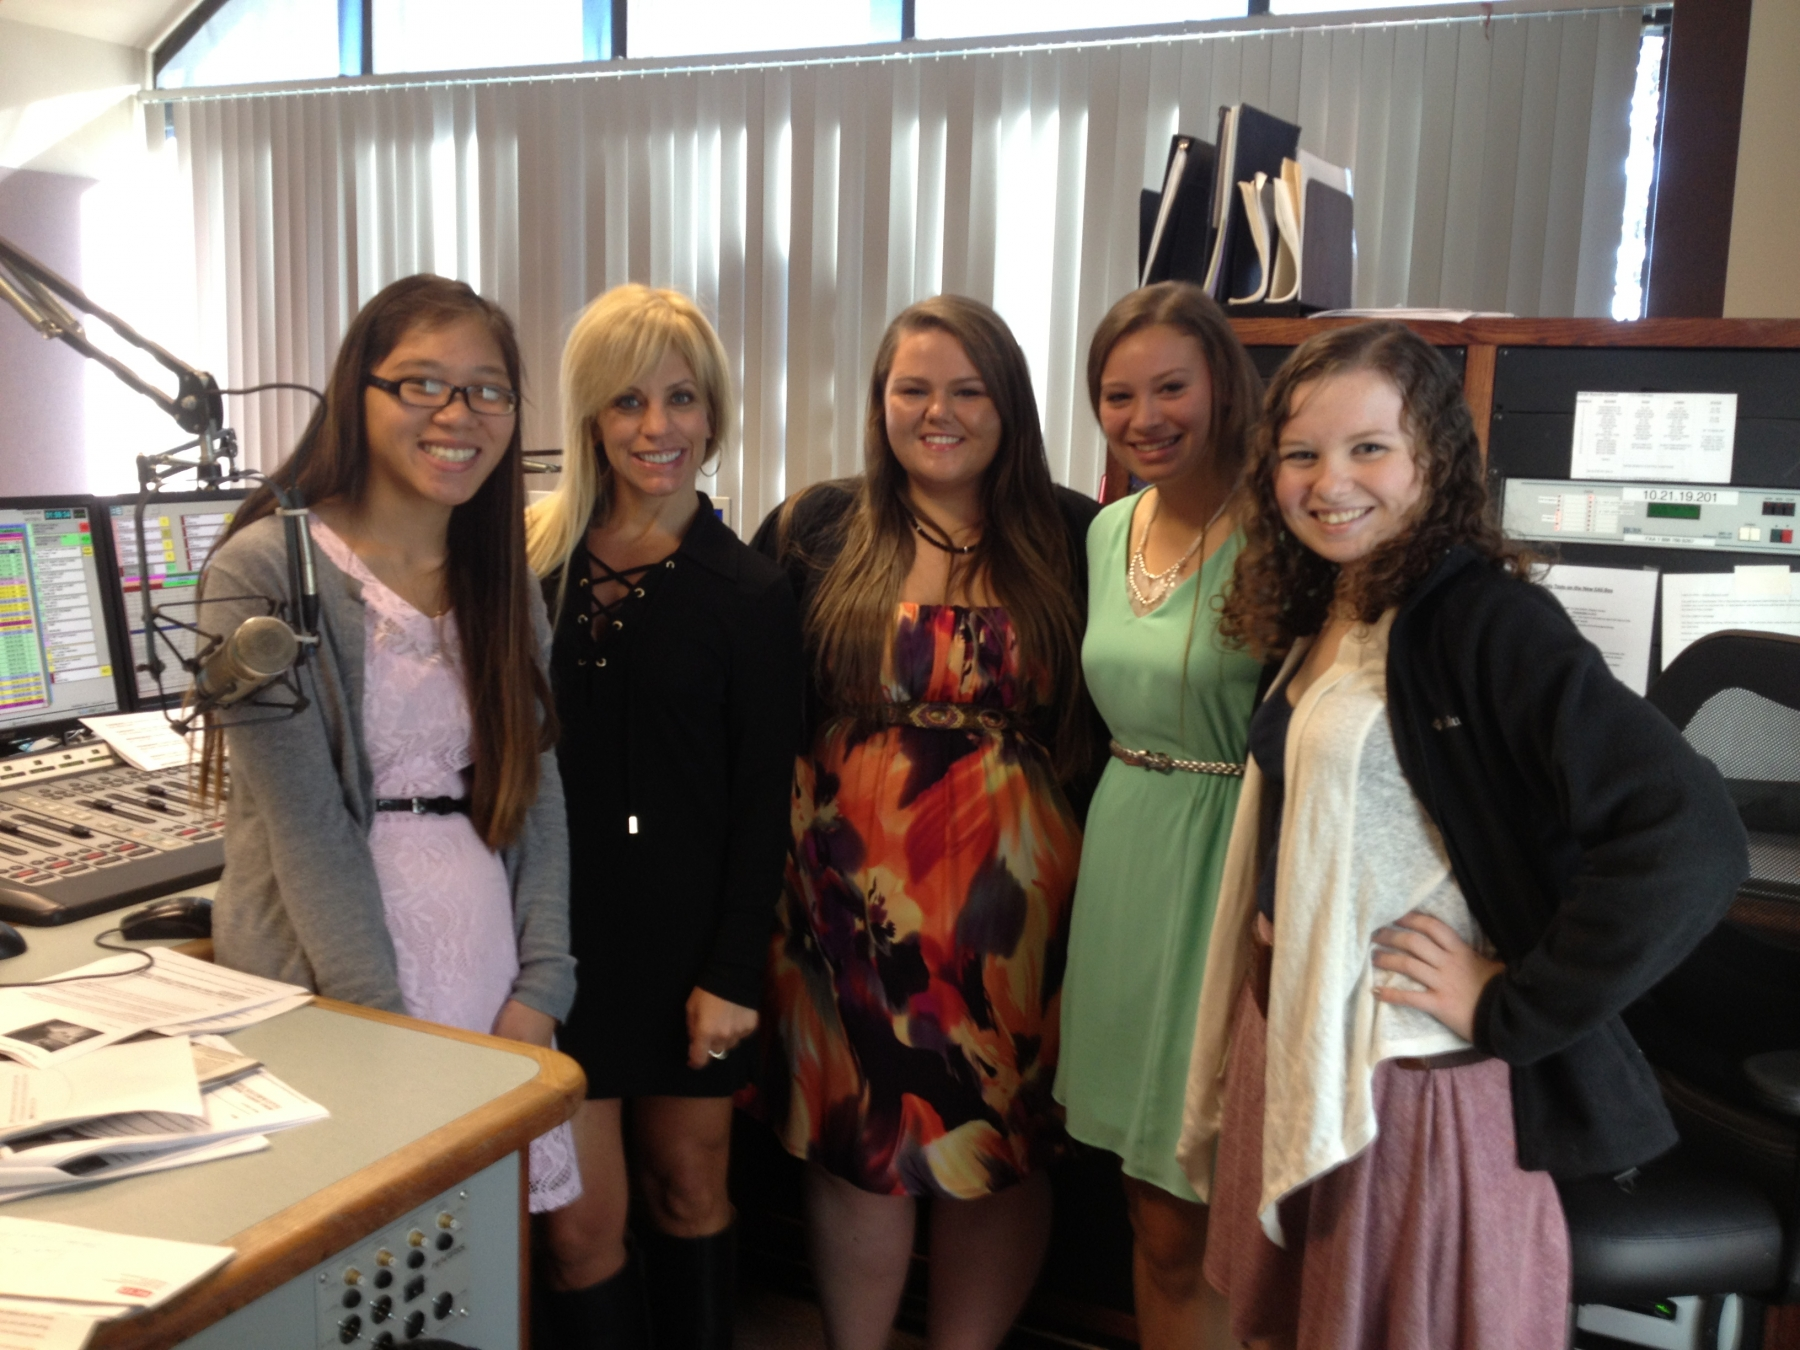 Students pictured here with Janet Snyder from Kiss 98.5